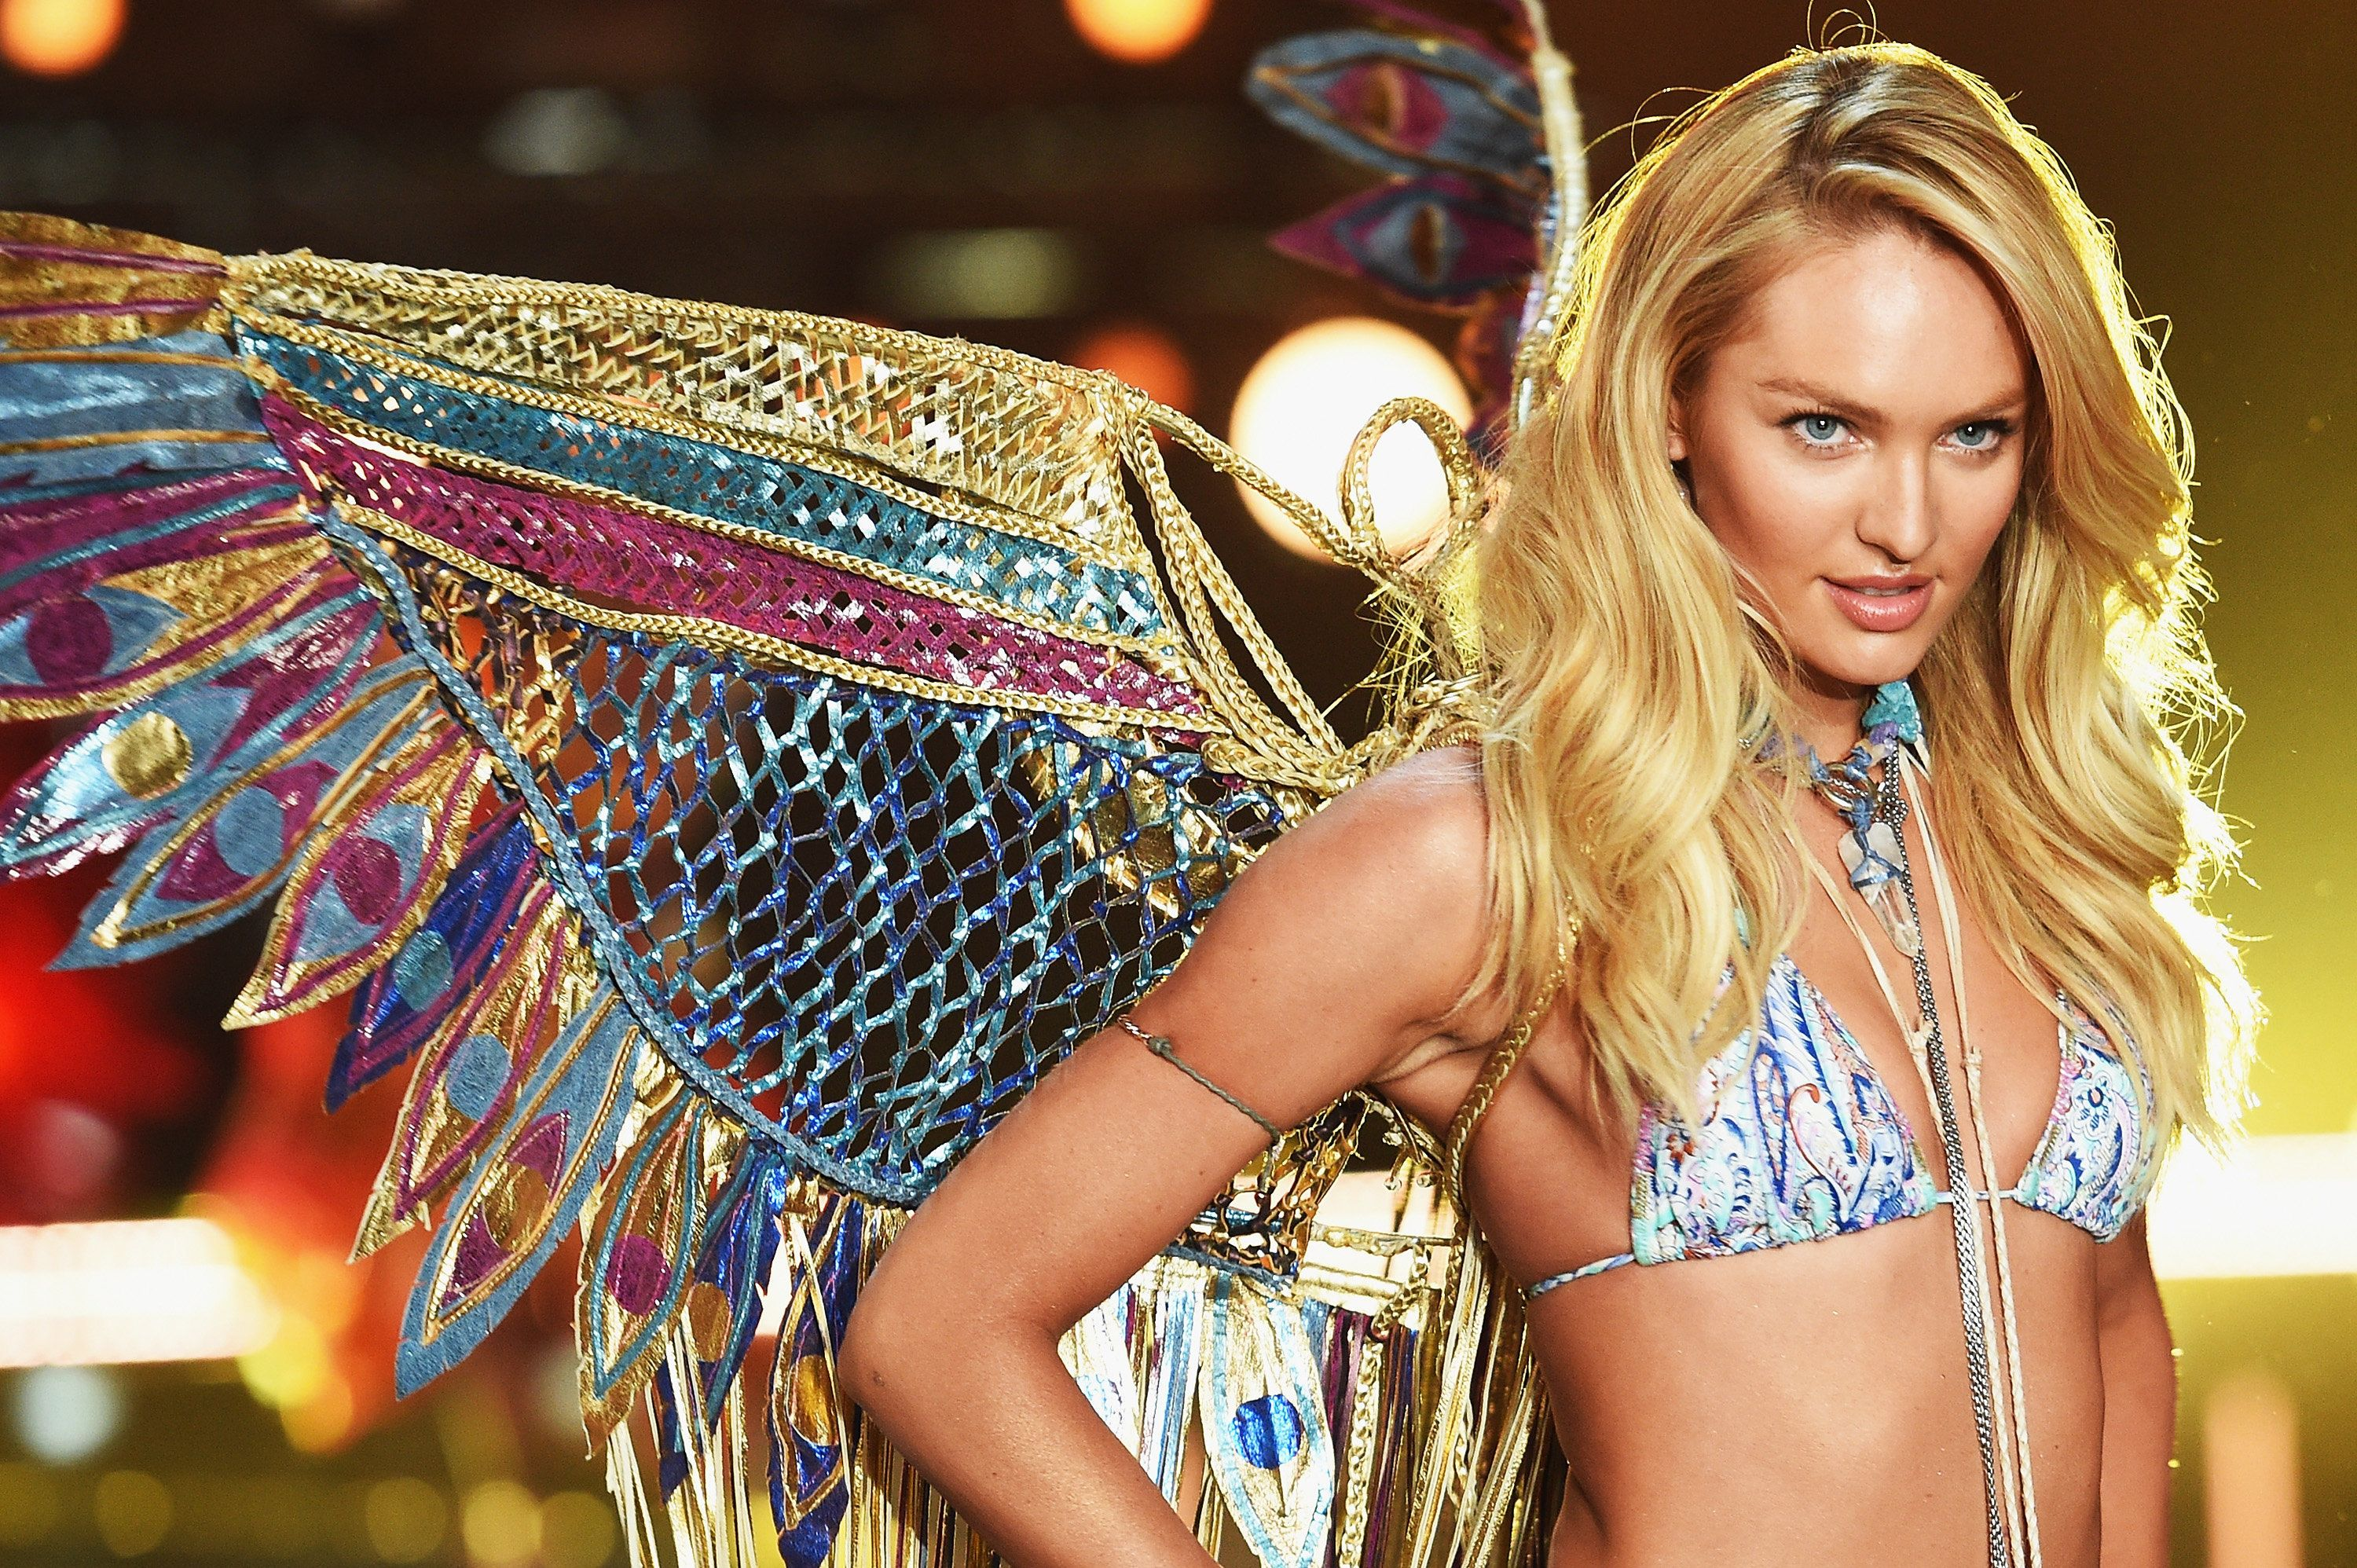 Victoria's Secret Angel Candice Swanepoel used a breastfeeding photo to shut down people who shame moms for breastfeeding in public.